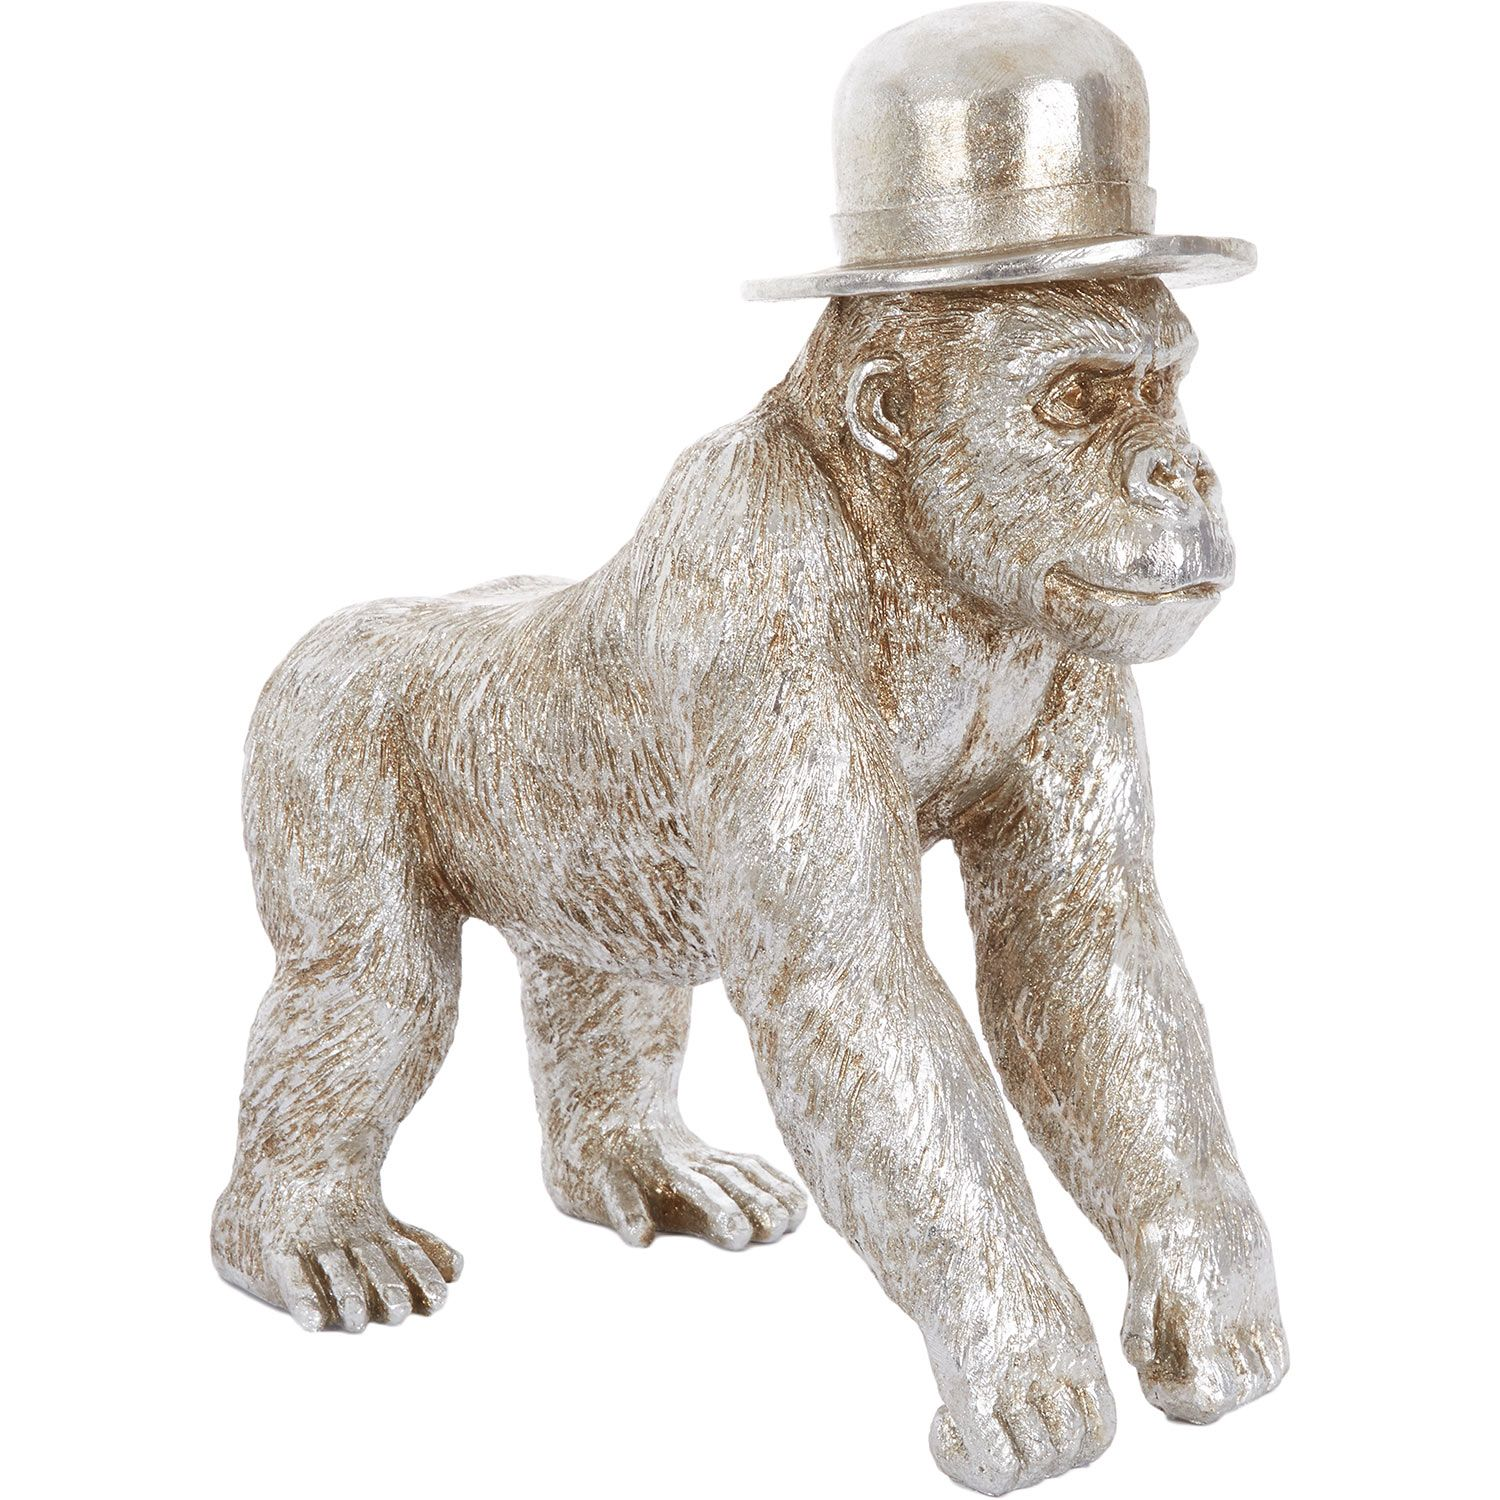 Miniature Spun Cotton Gorilla Figure Vintage by Crystal